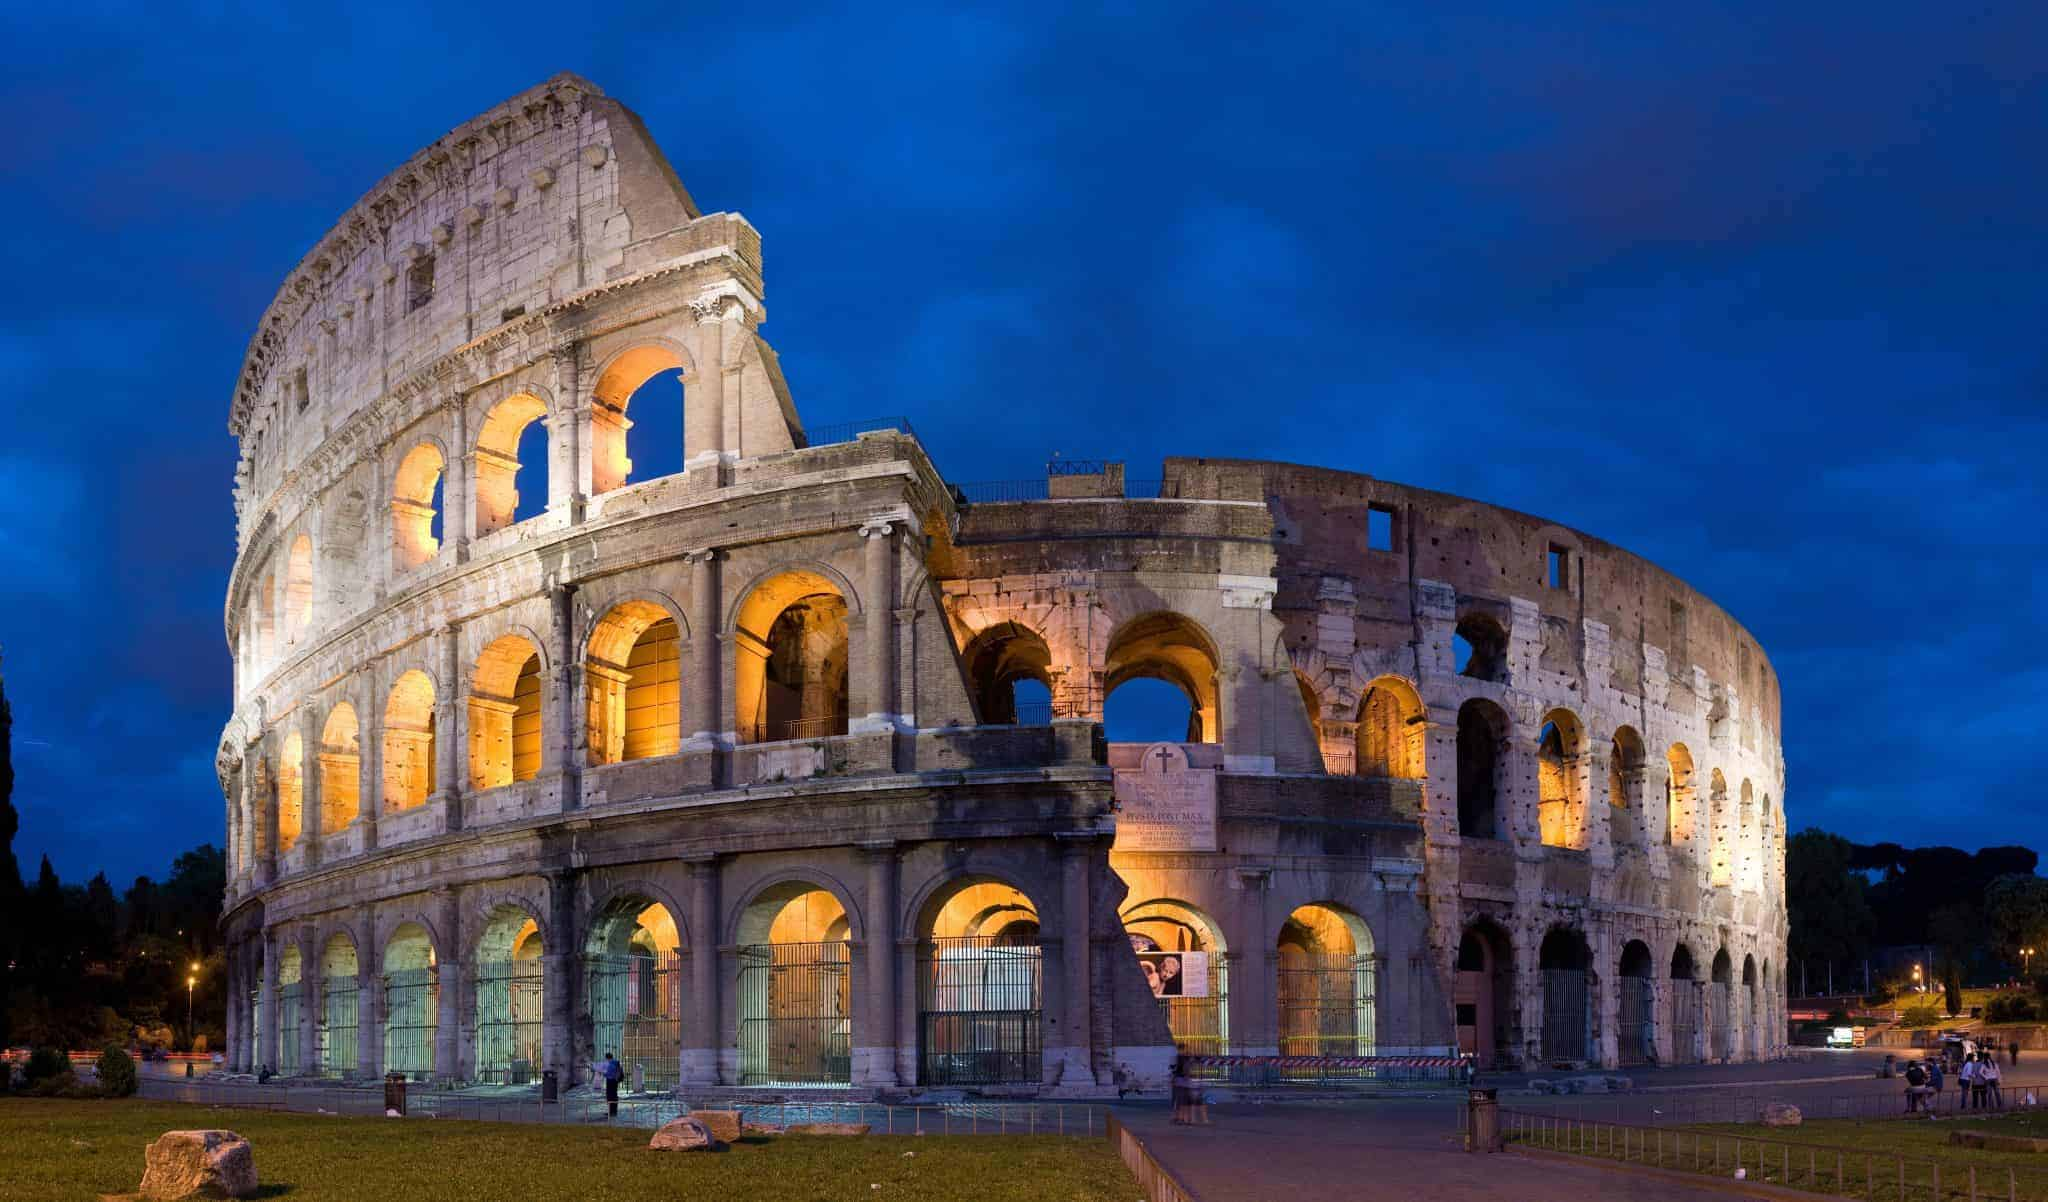 Colosseum in Rome by night, things to do in Rome, St. Peter's Square, St. Peter's Dome in Rome, visit Rome in winter, Rome in winter, winter in Rome, Vatican city, 2-3 days Rome itinerary